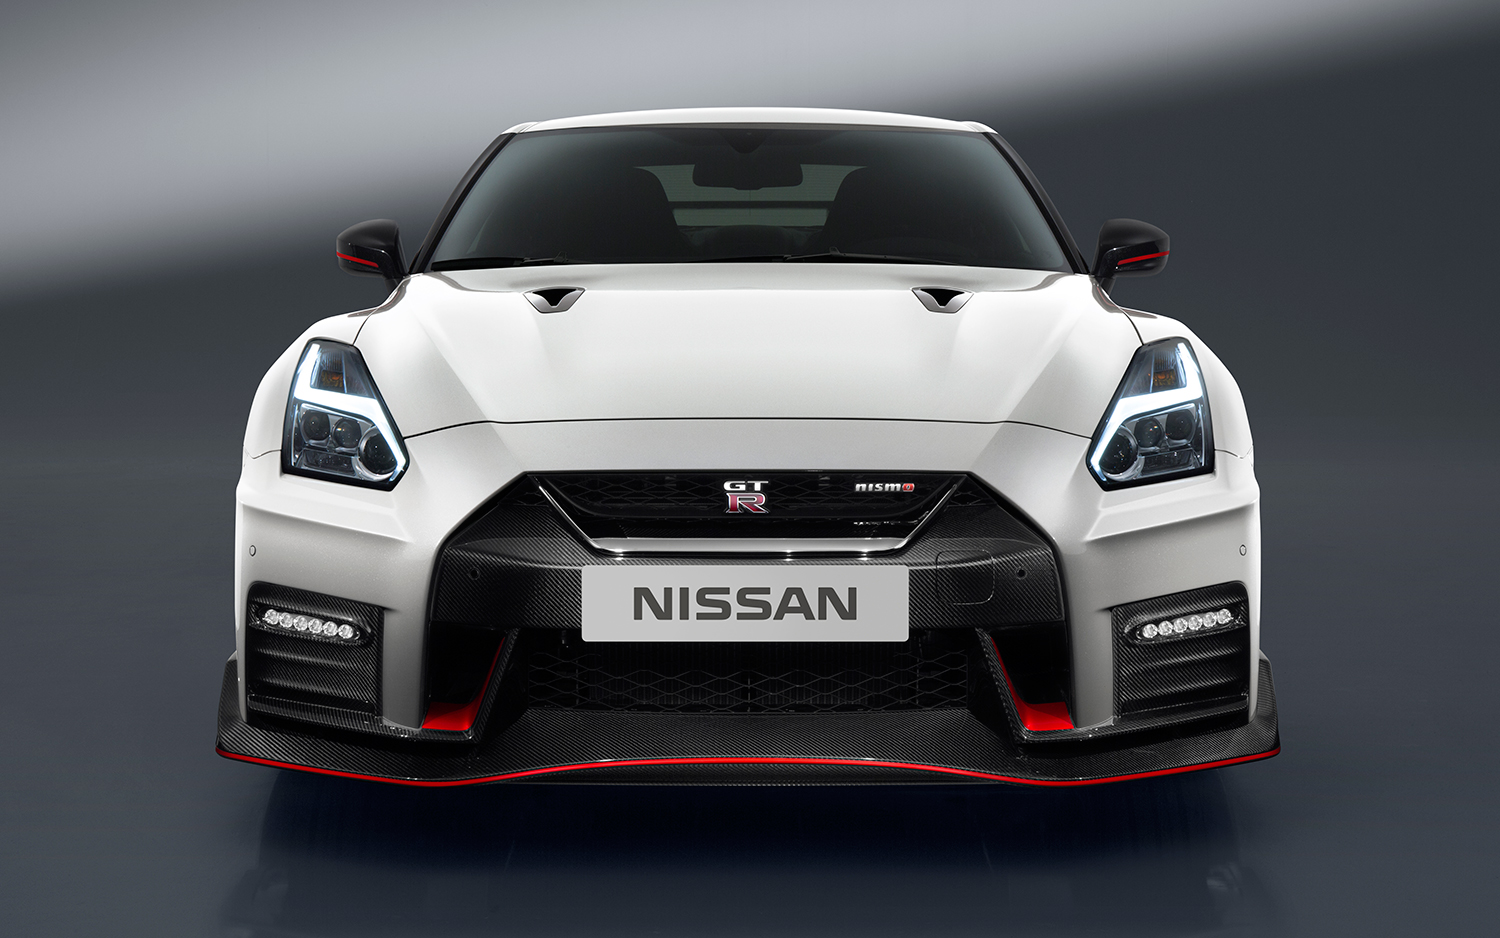 Nissan Gtr 2017 Price >> 2017 Nissan Gt R Nismo Price Jumps 25 000 To 176 585